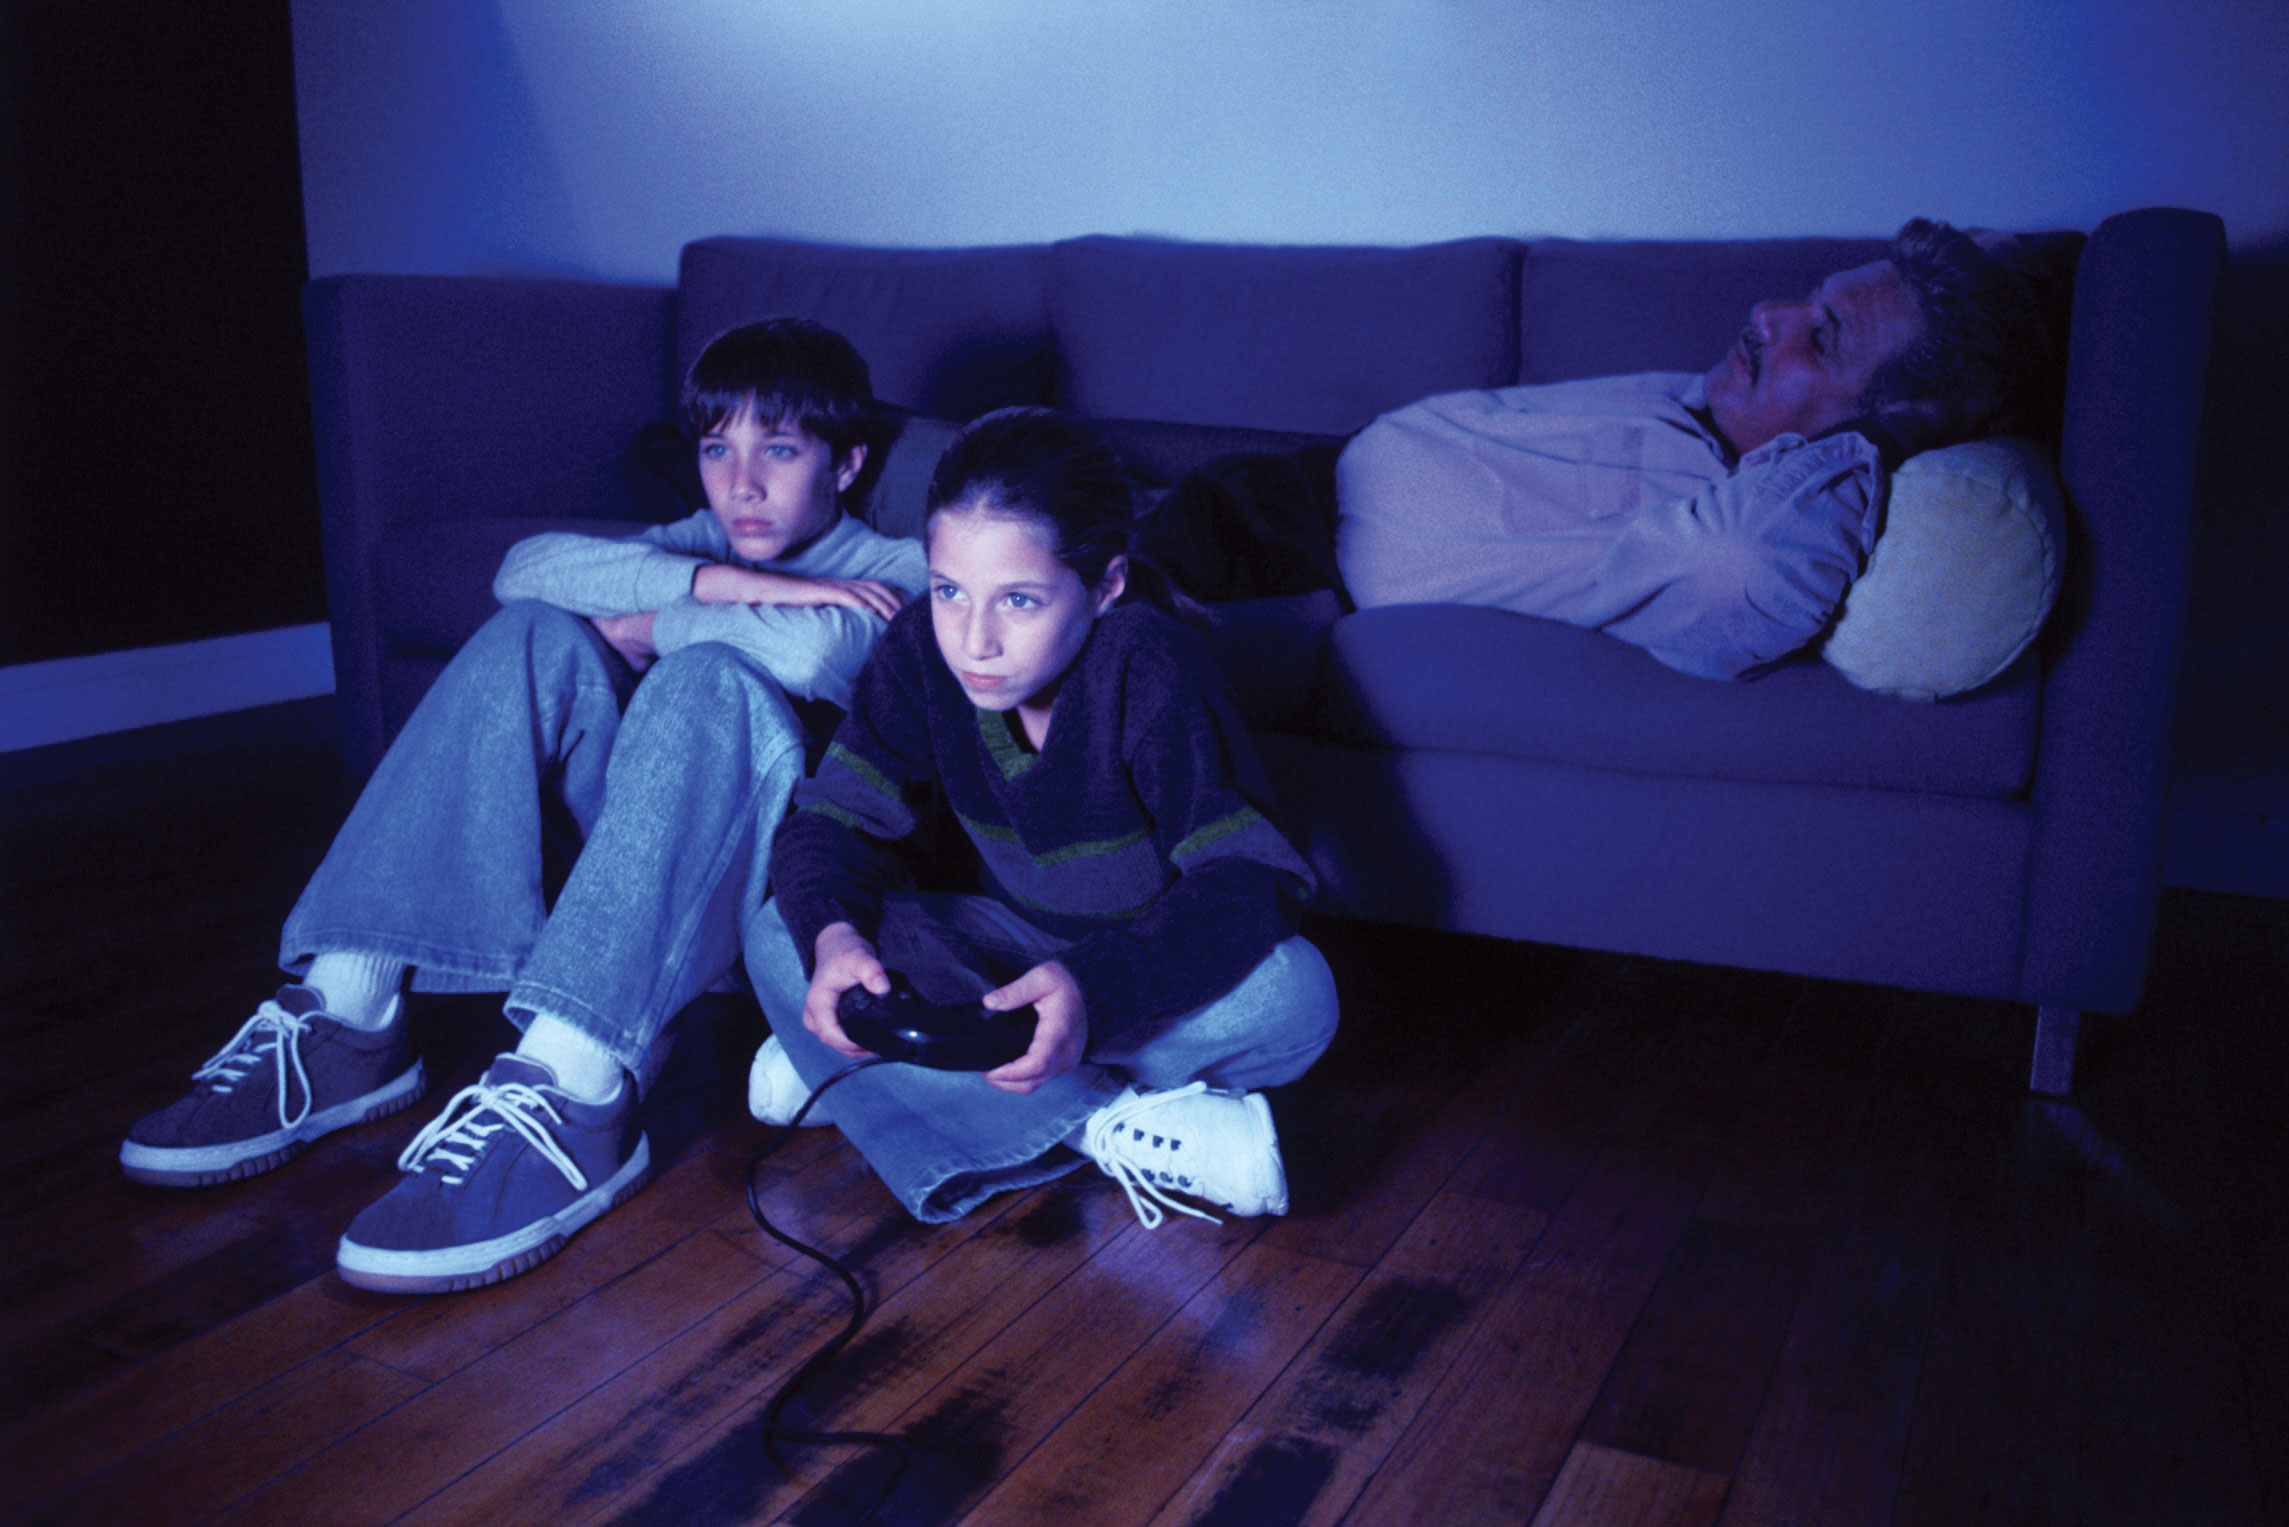 what is video game addiction Video game addiction is a phrase that is often thrown around find out how video game addiction can be very damaging to your life, family, and finances here.